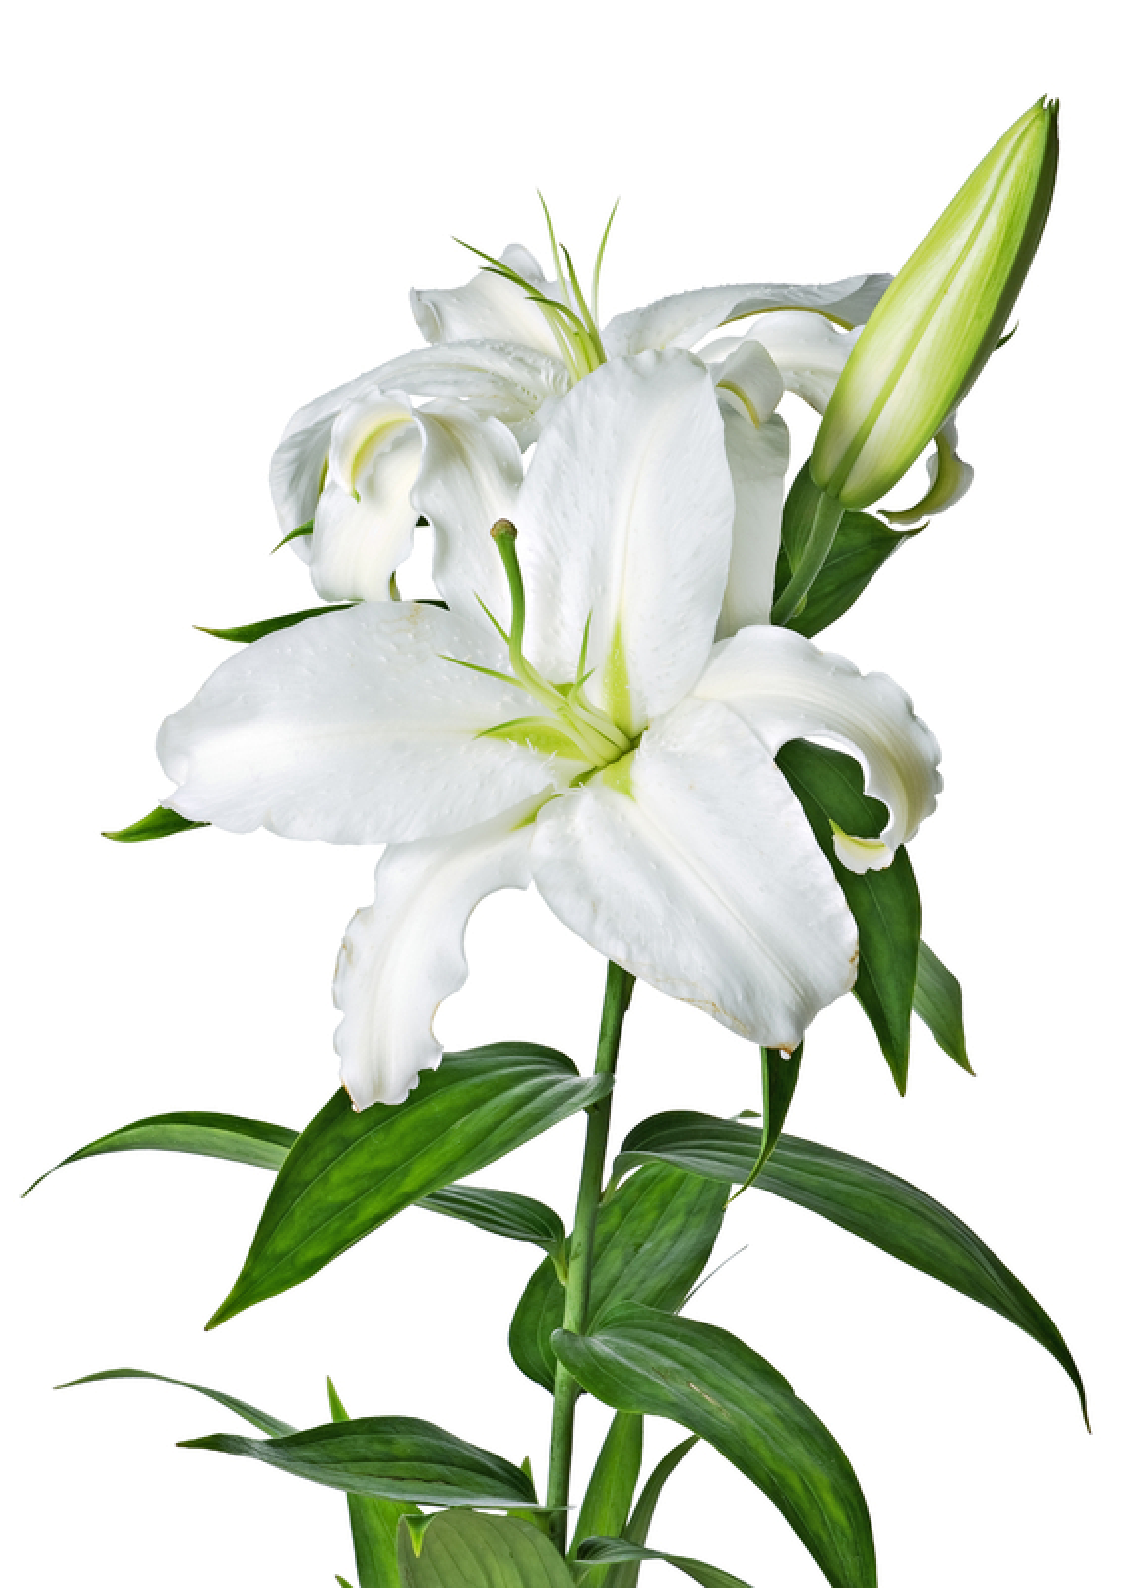 Easter lily garland png. Image mart